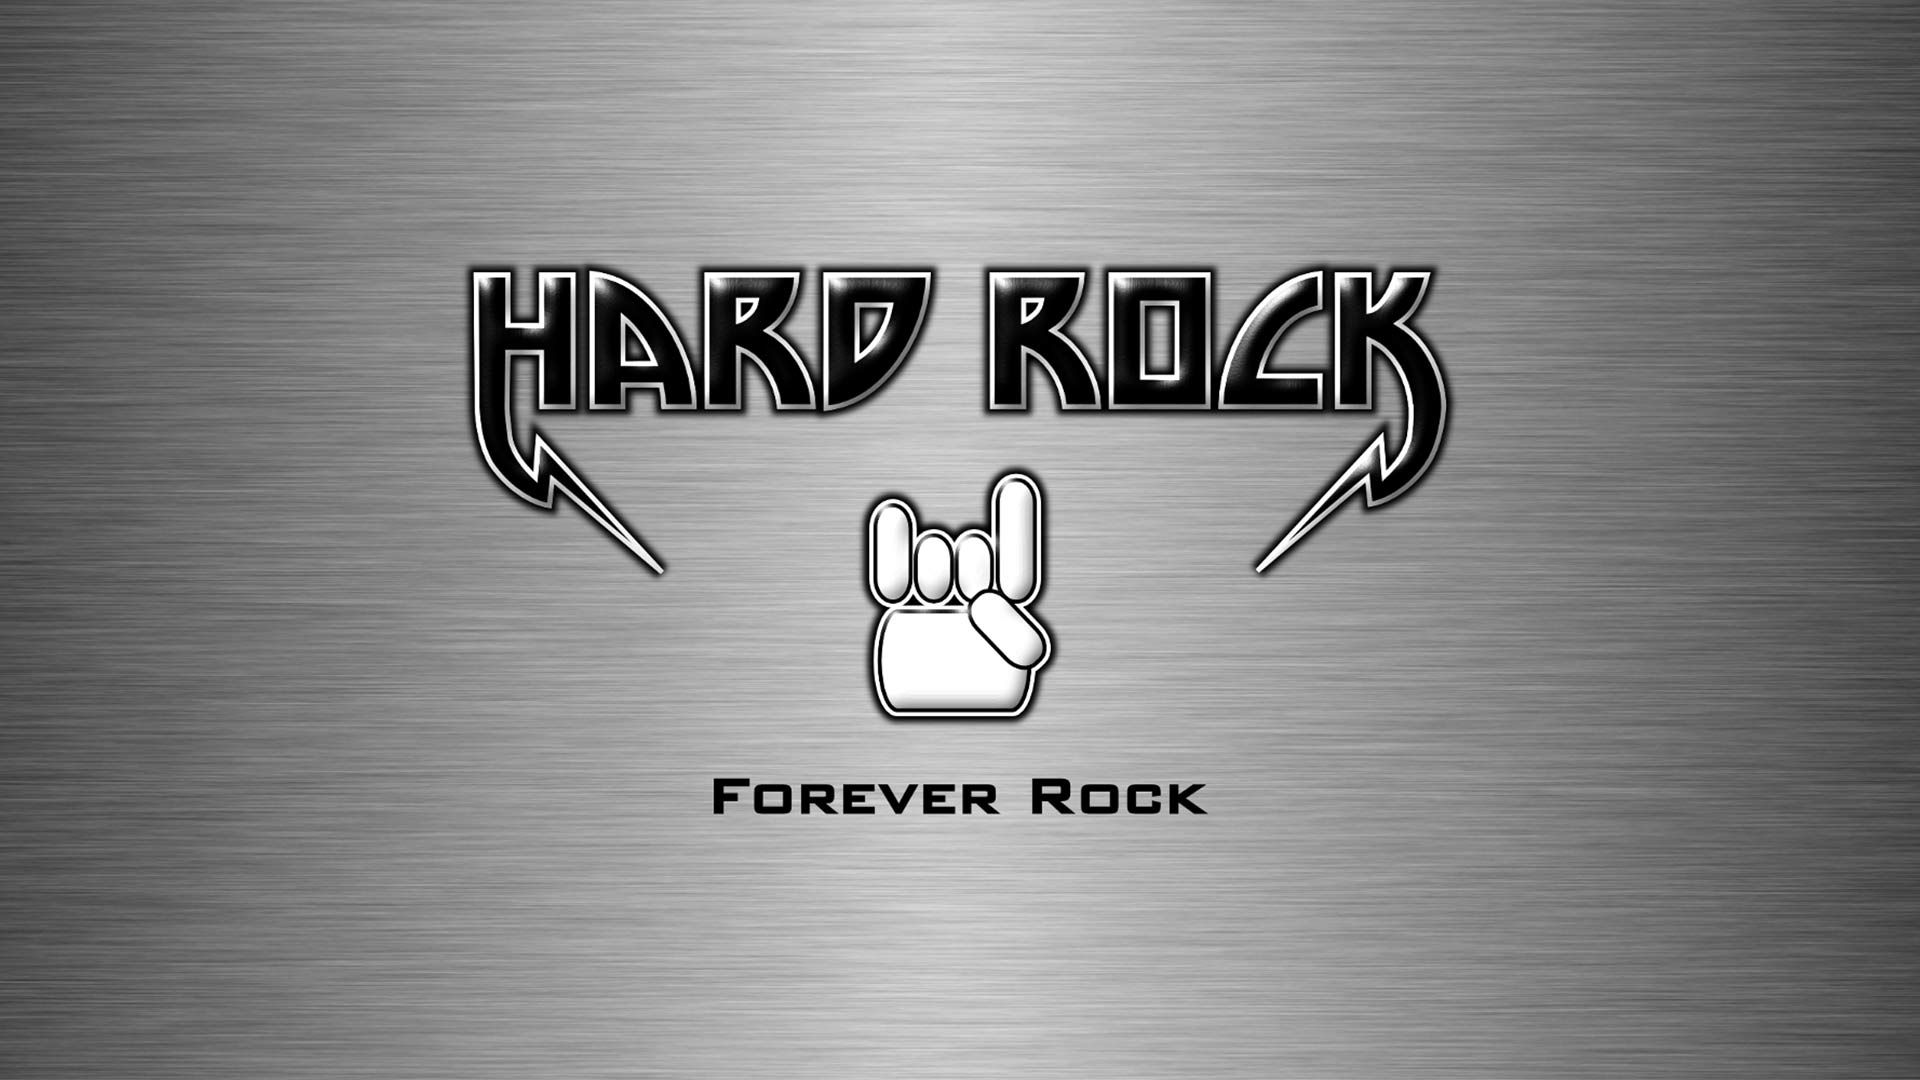 hard rock music logo wwwpixsharkcom images galleries